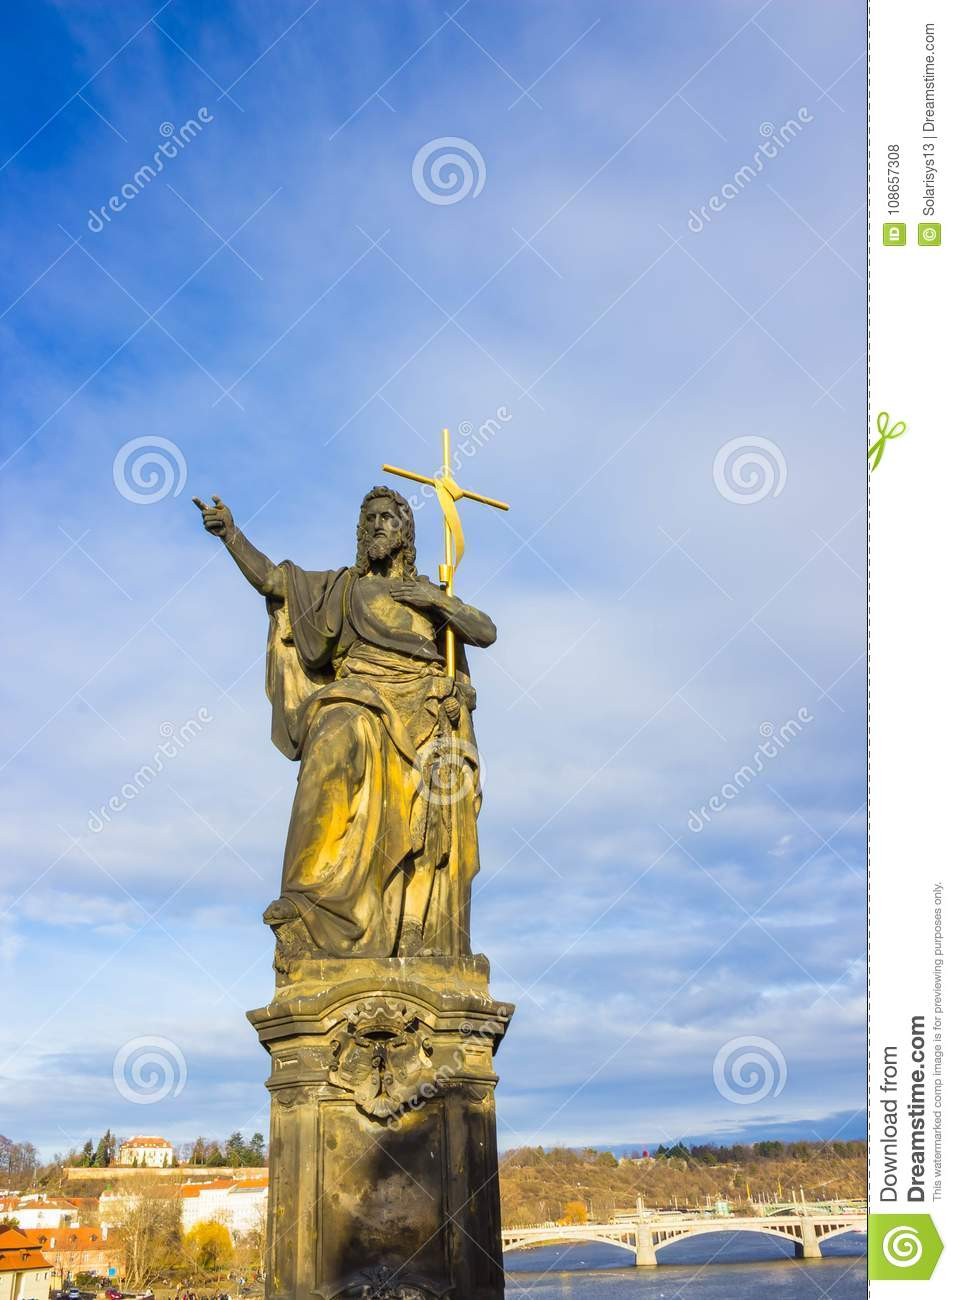 Prague, Czech Republic - December 31, 2017: The gothic sculpture of the John the Baptist on the Charles bridge